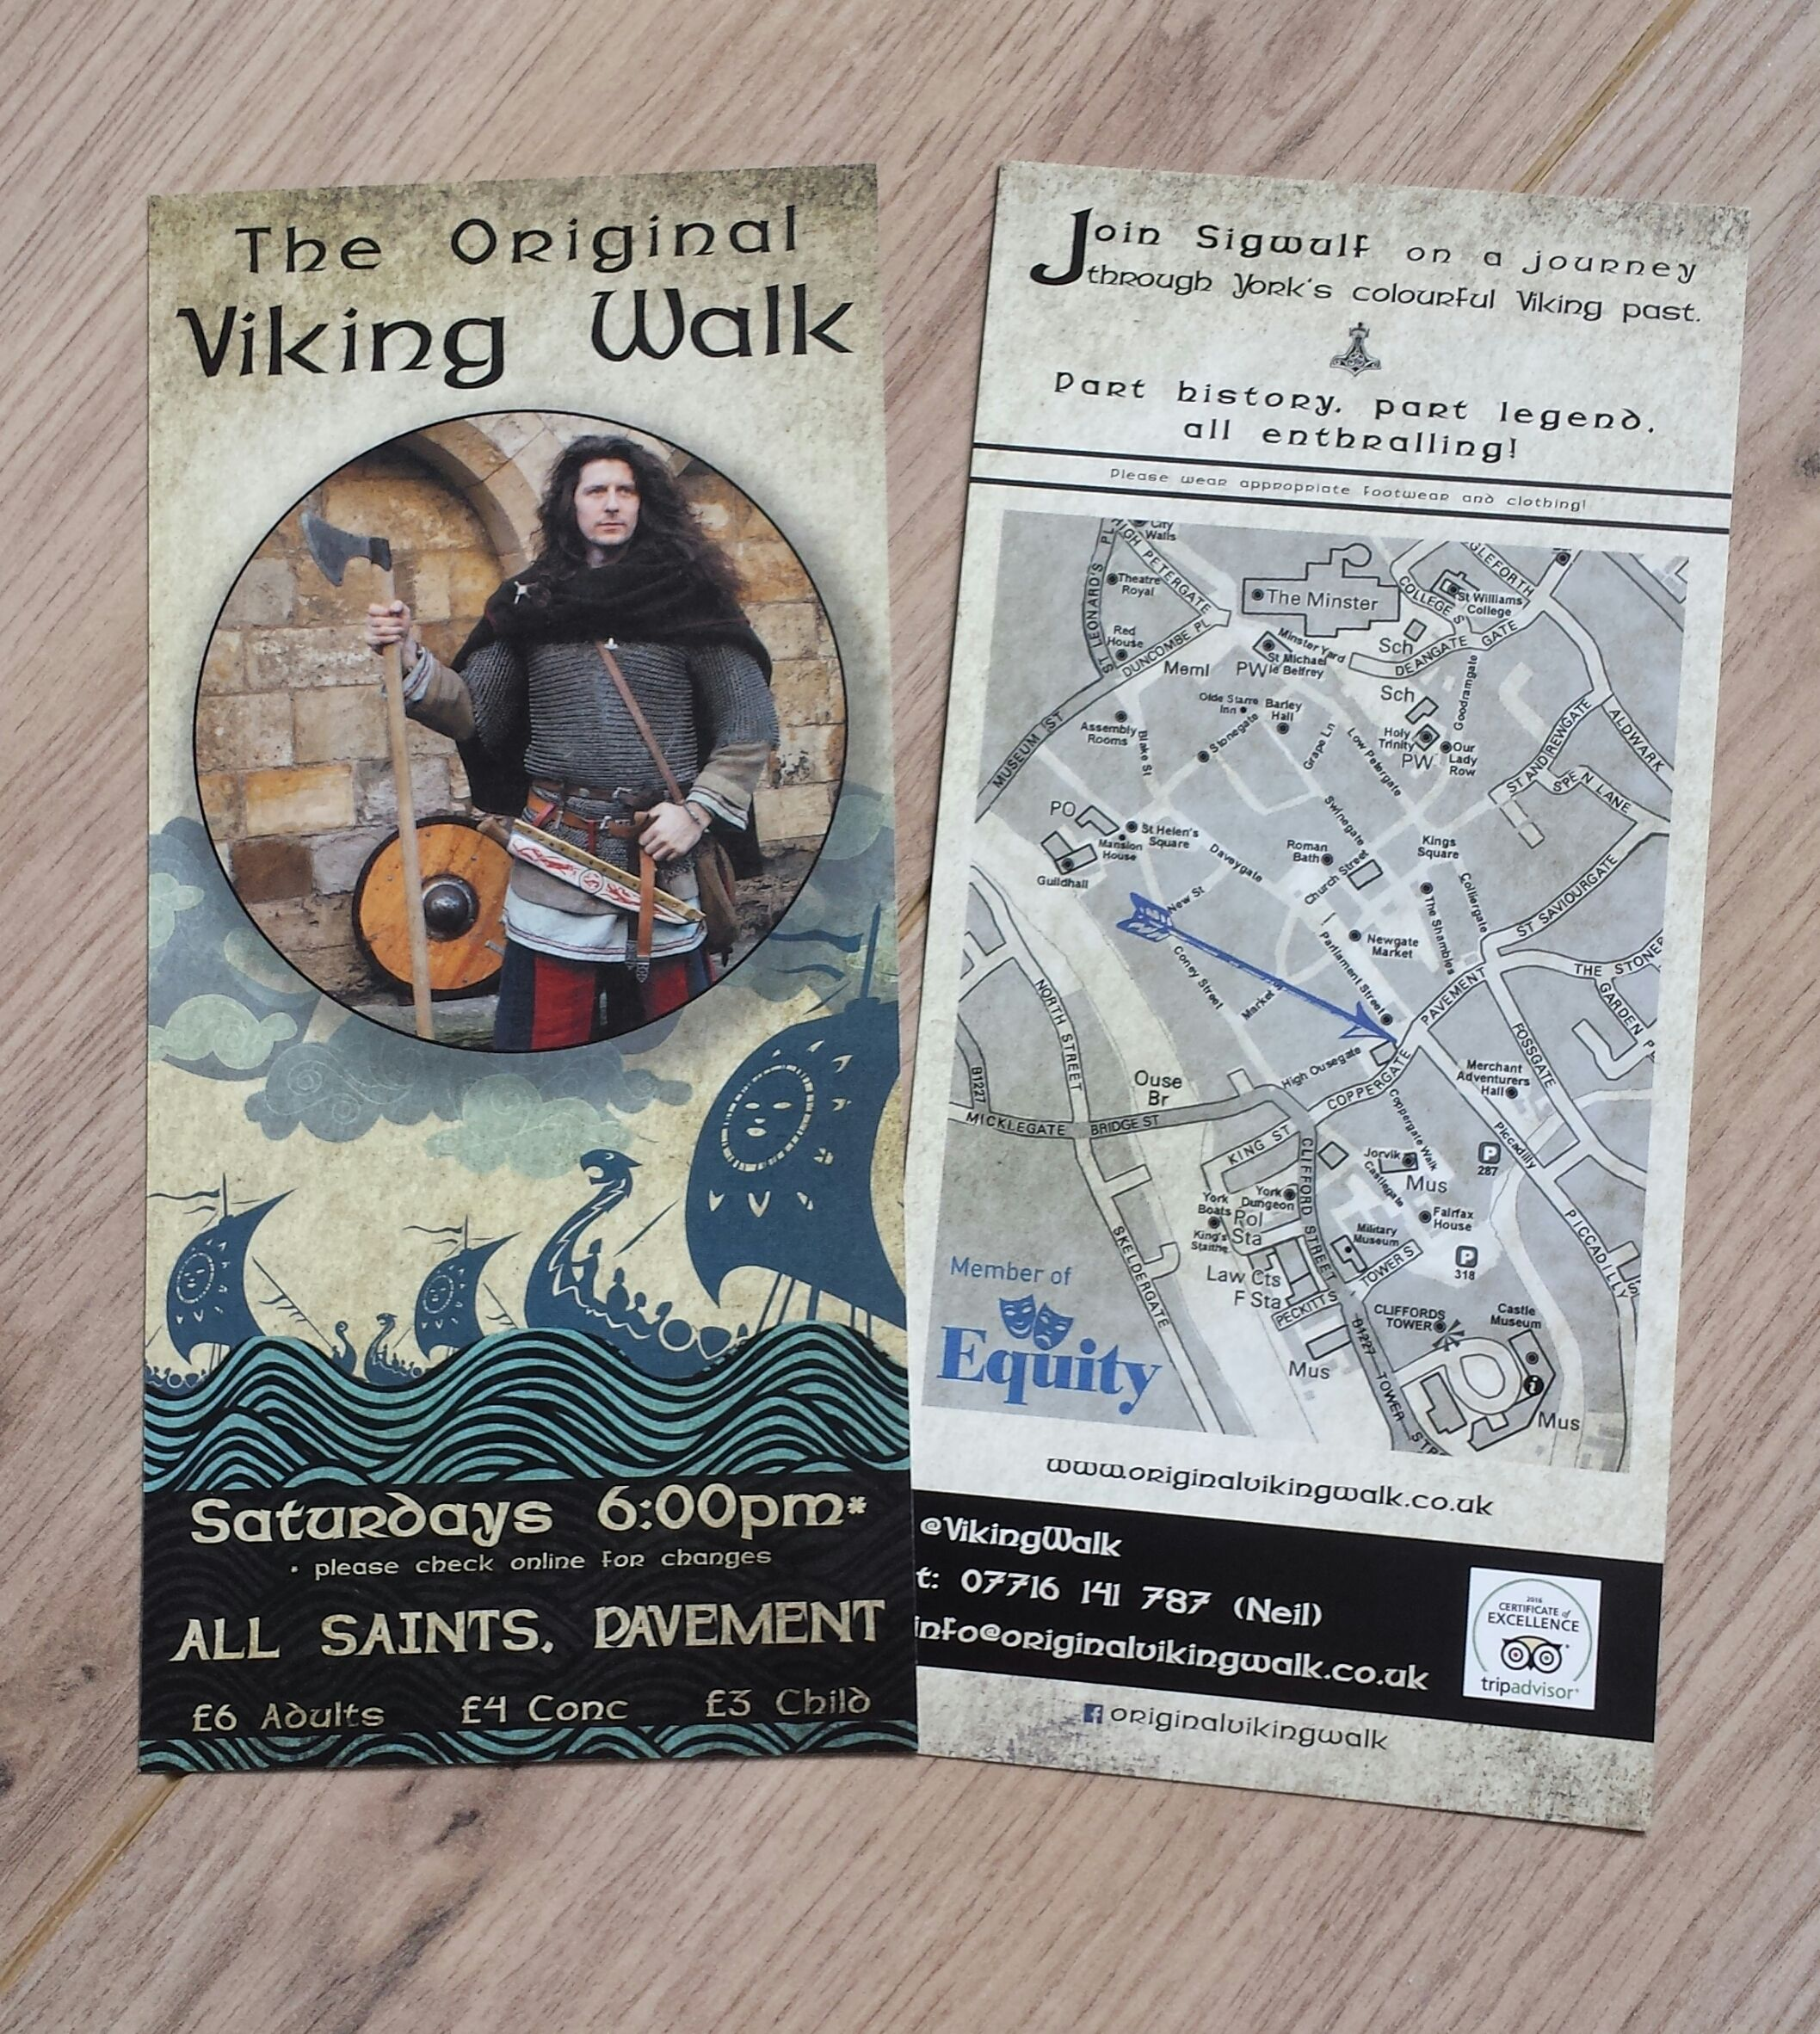 And here they are, they new original flyers for 2016!  :D   www.facebook.com/originalvikingwalk   e: info@originalvikingwalk.co.uk   t: +44(0)7716141787 (Neil) @VikingWalk www.northernforge.co.uk